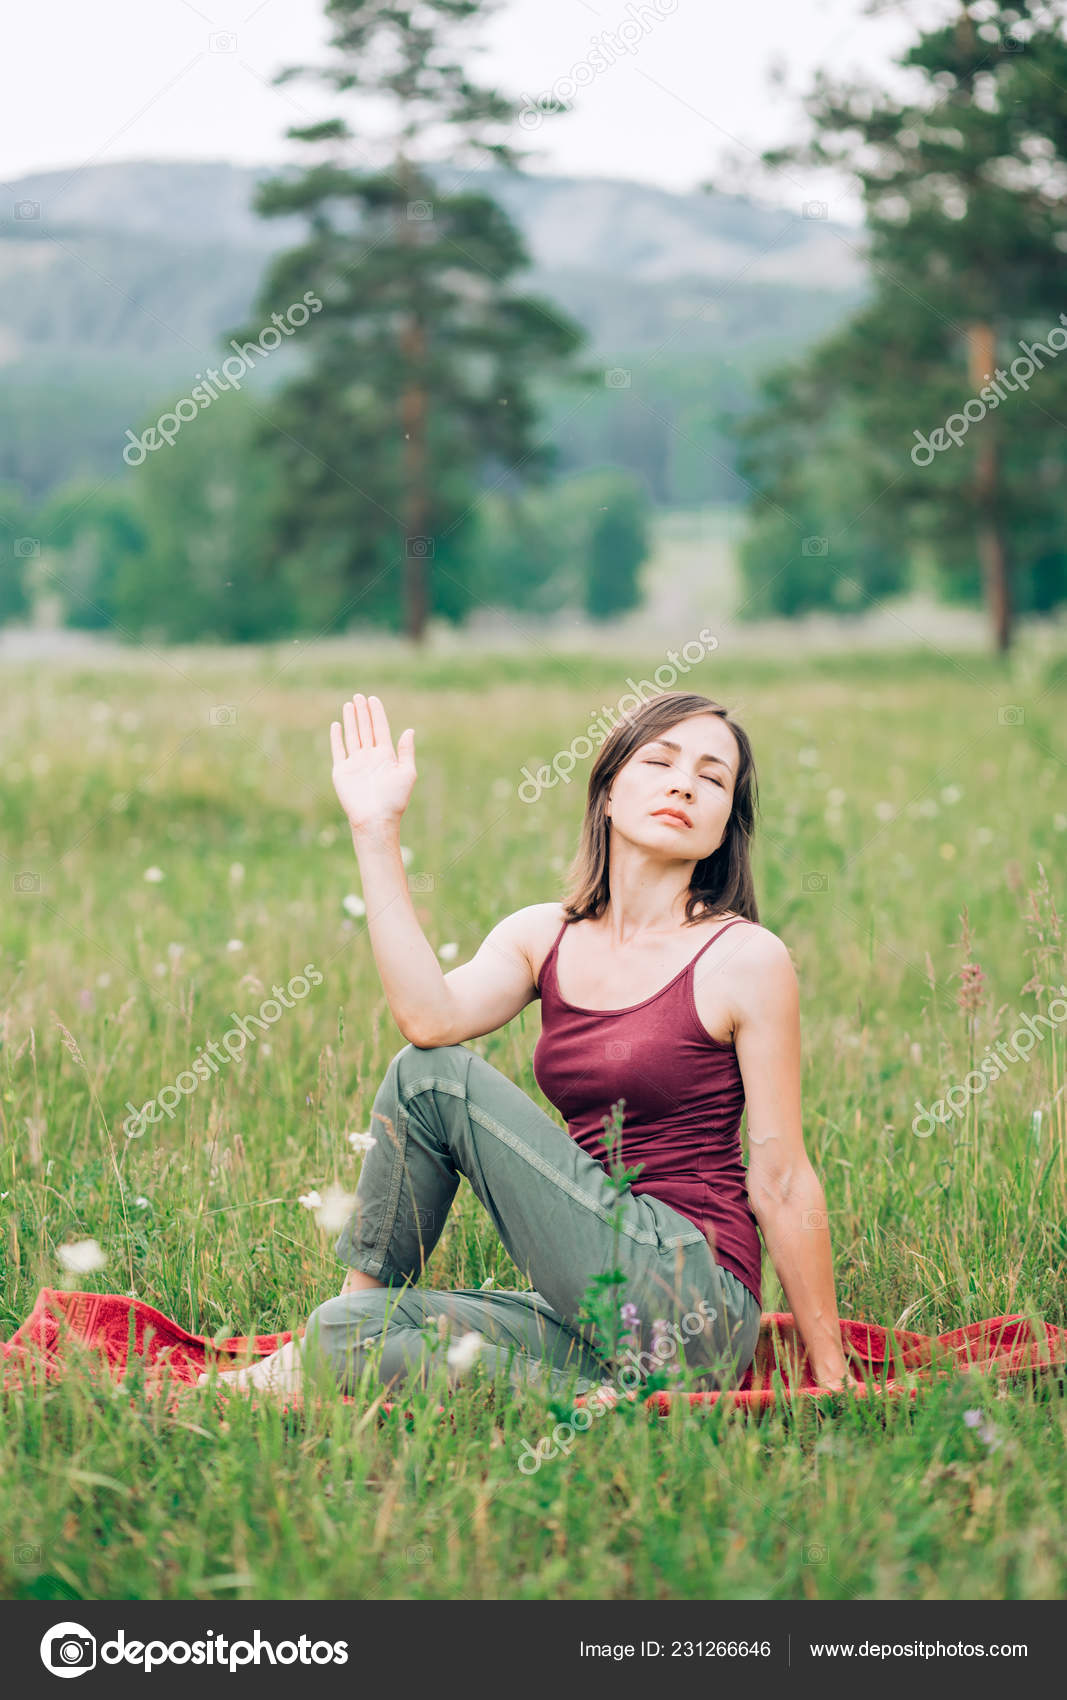 Yoga Meditation Forest Beautiful Nature Brunette Woman Meditating Nature Eyes Stock Photo C Liliyabatyrova Mail Ru 231266646